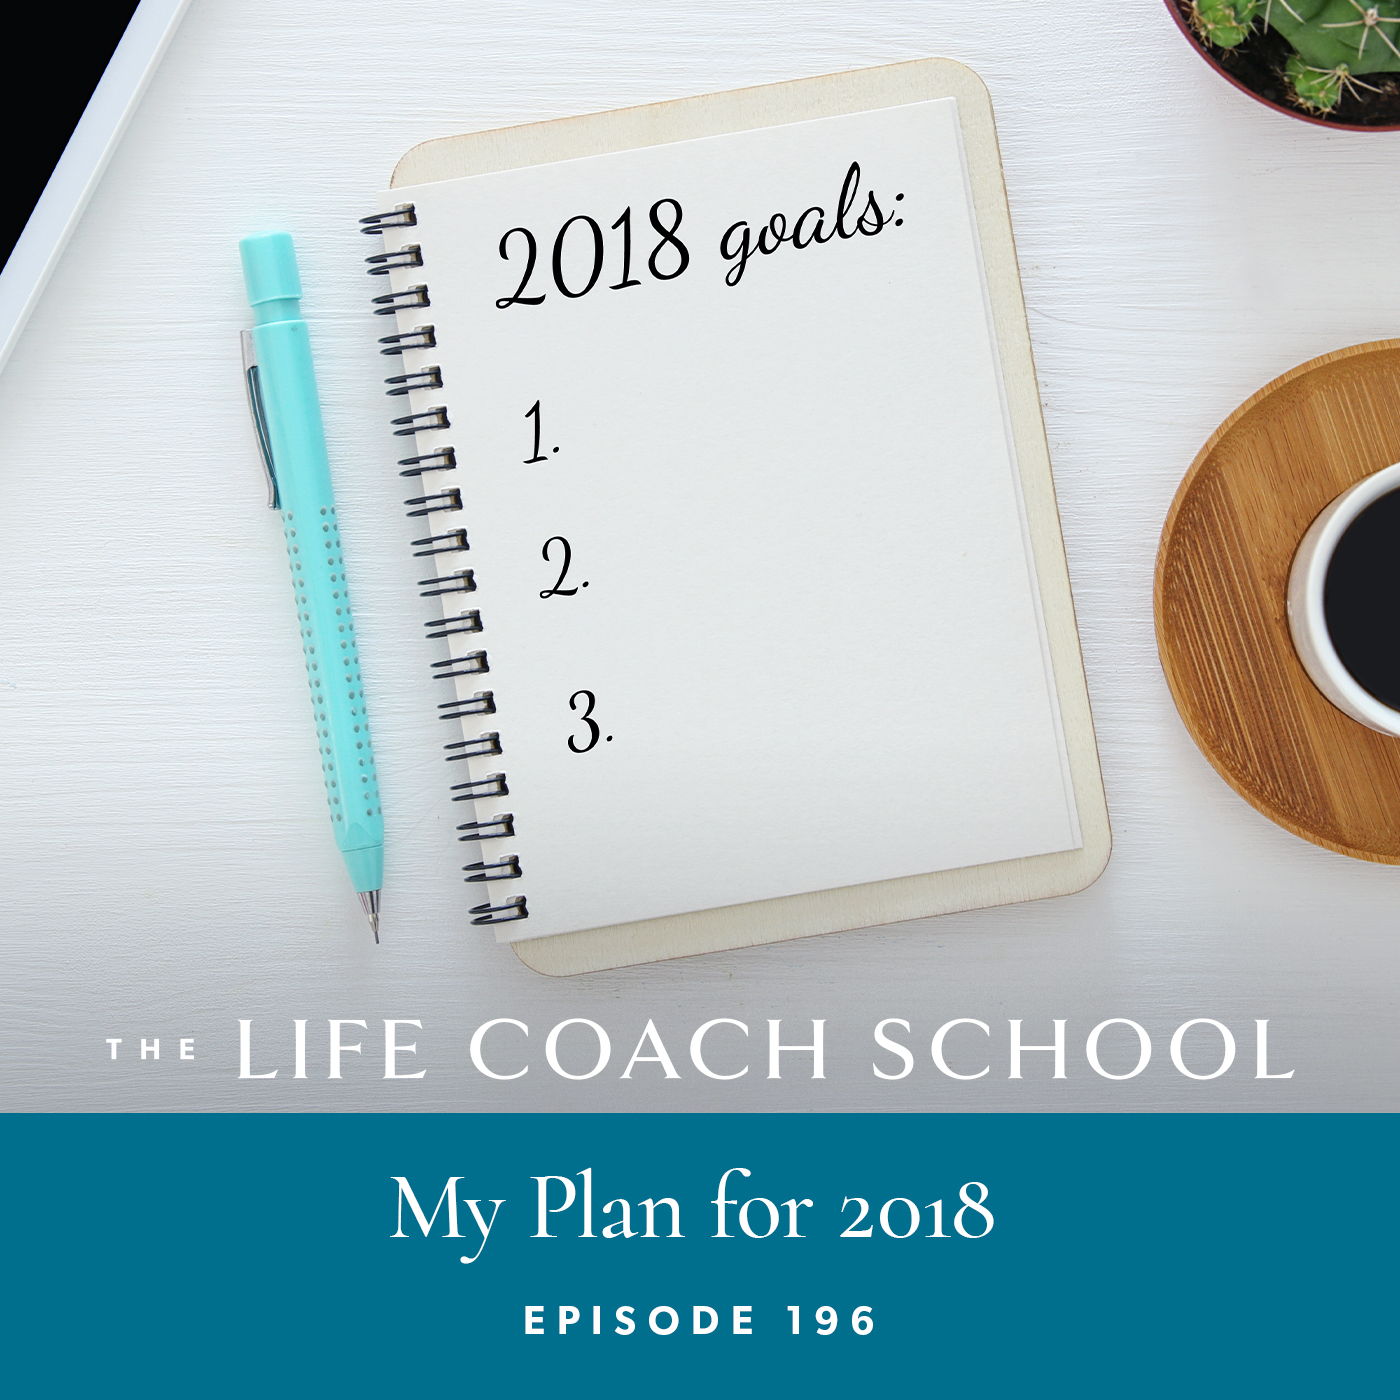 The Life Coach School Podcast with Brooke Castillo | Episode 196 | My Plan for 2018